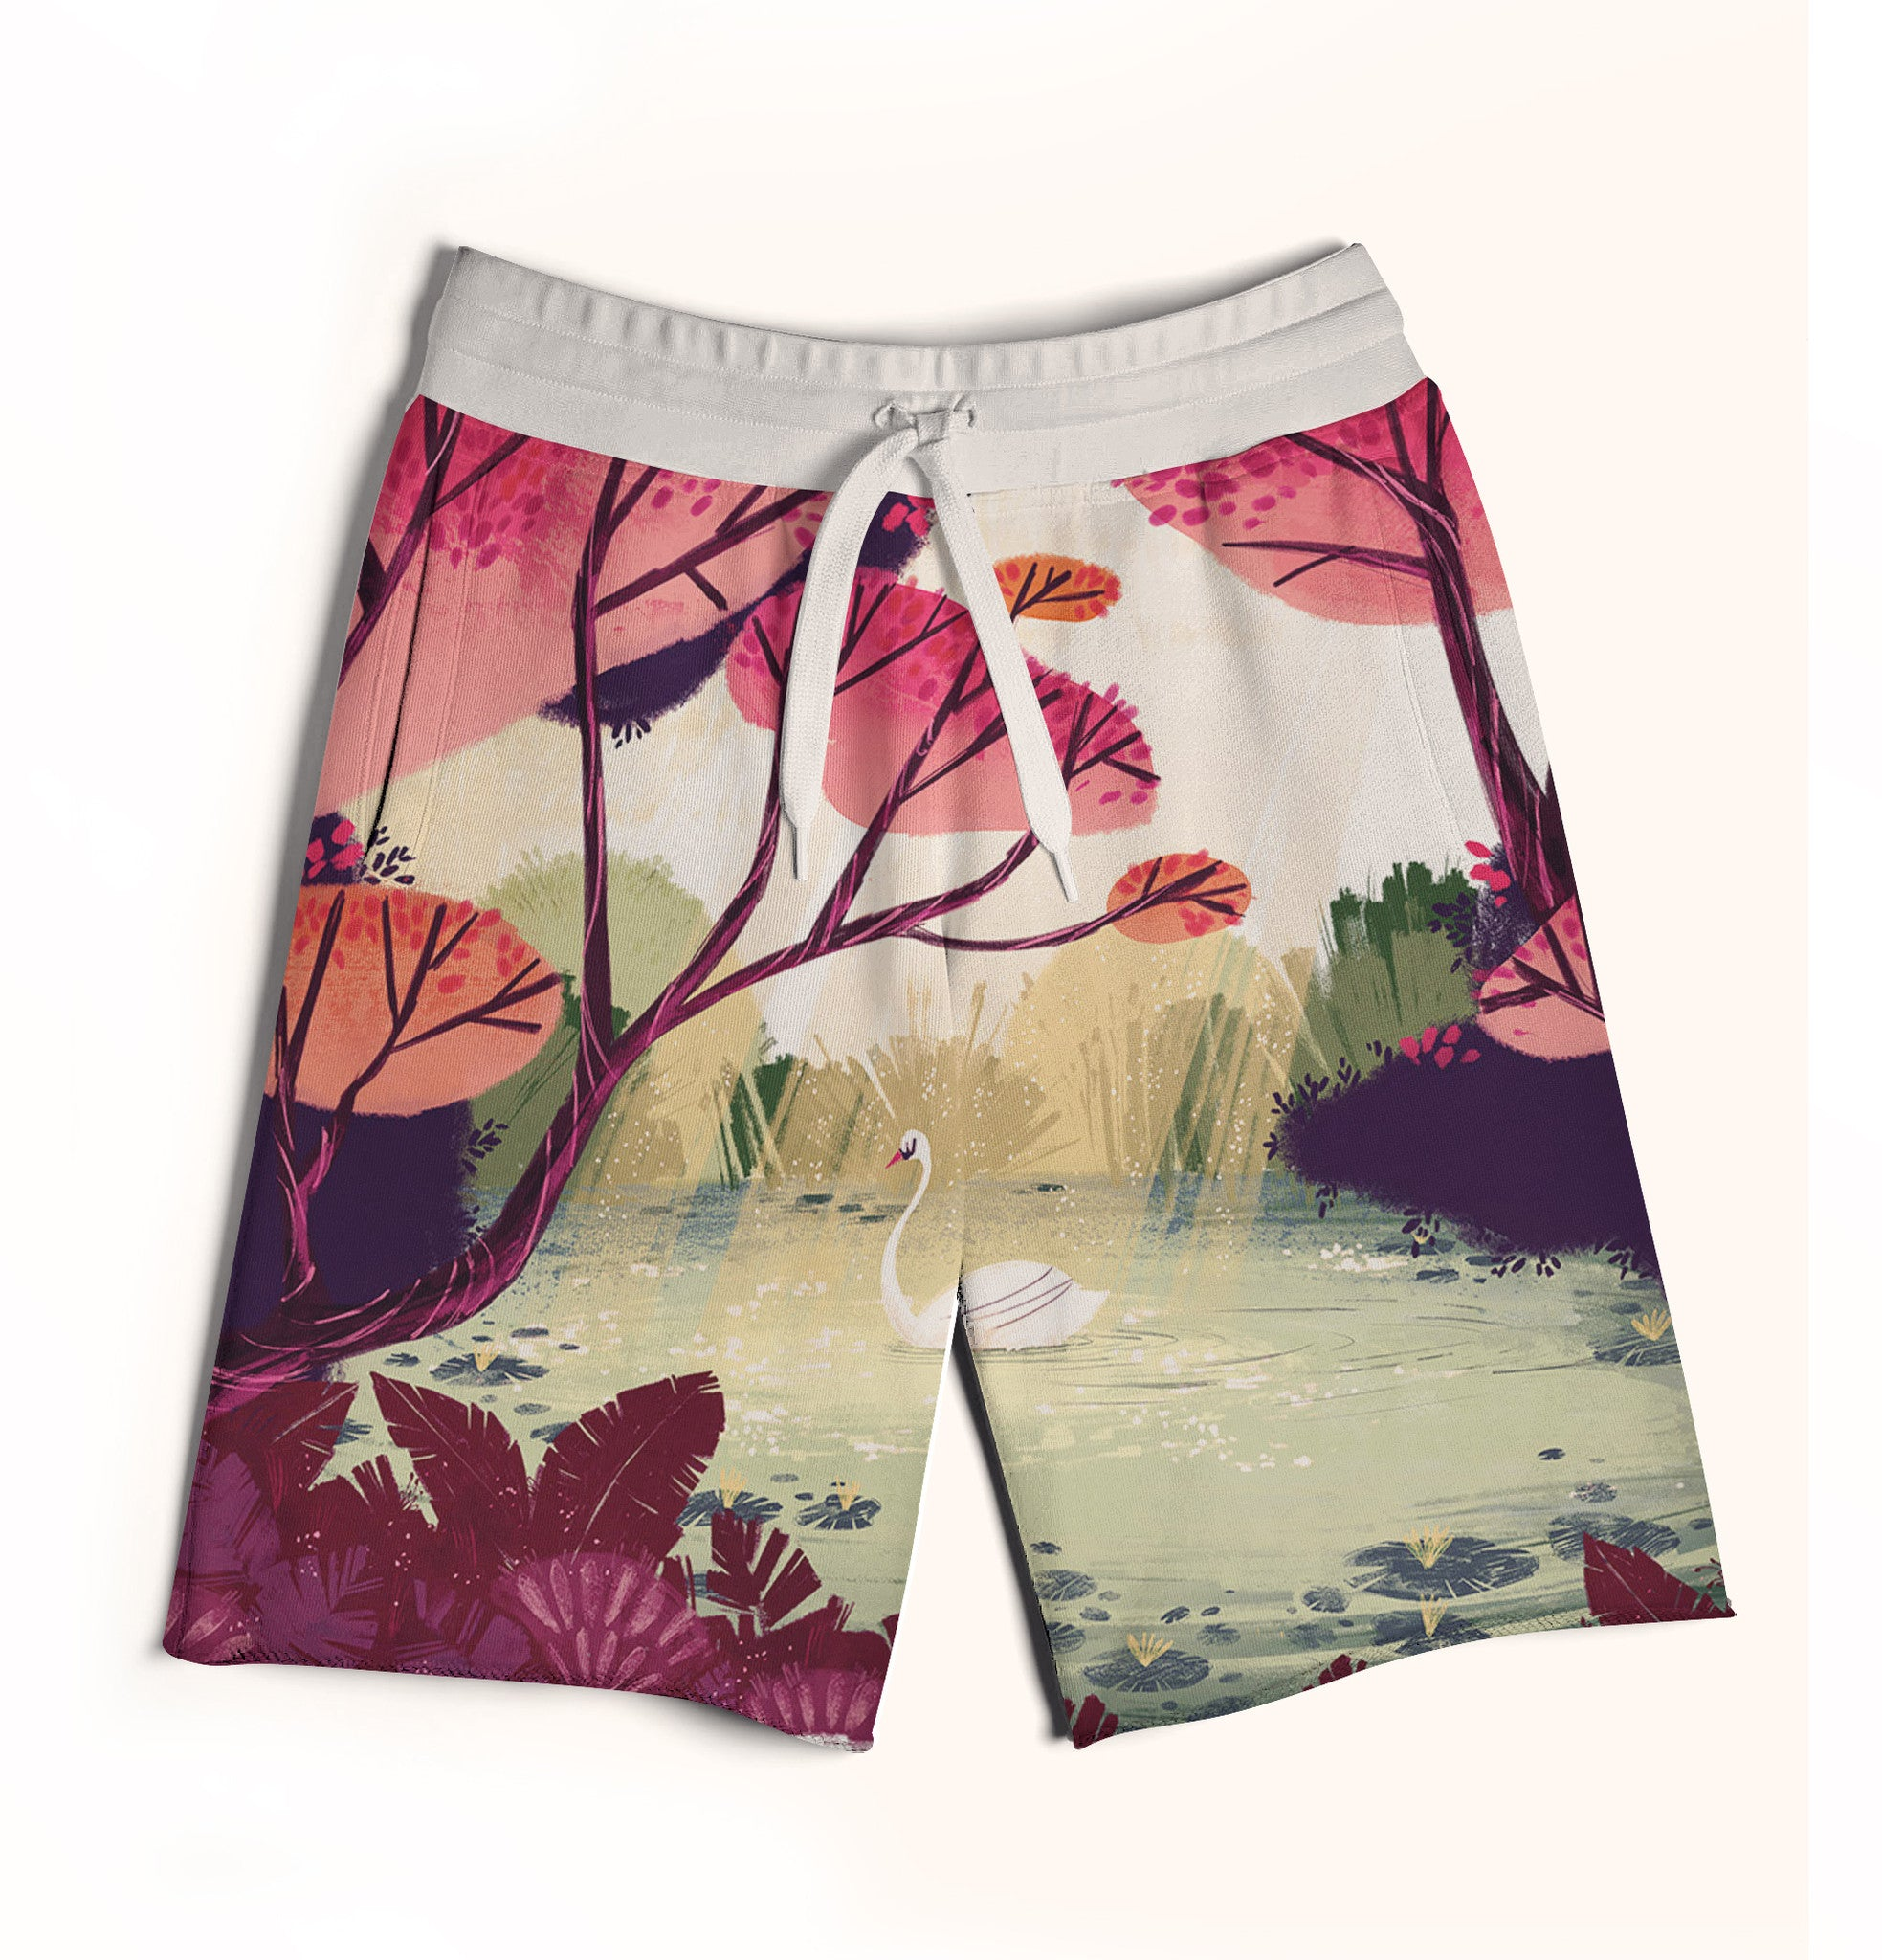 The Swamp Shorts